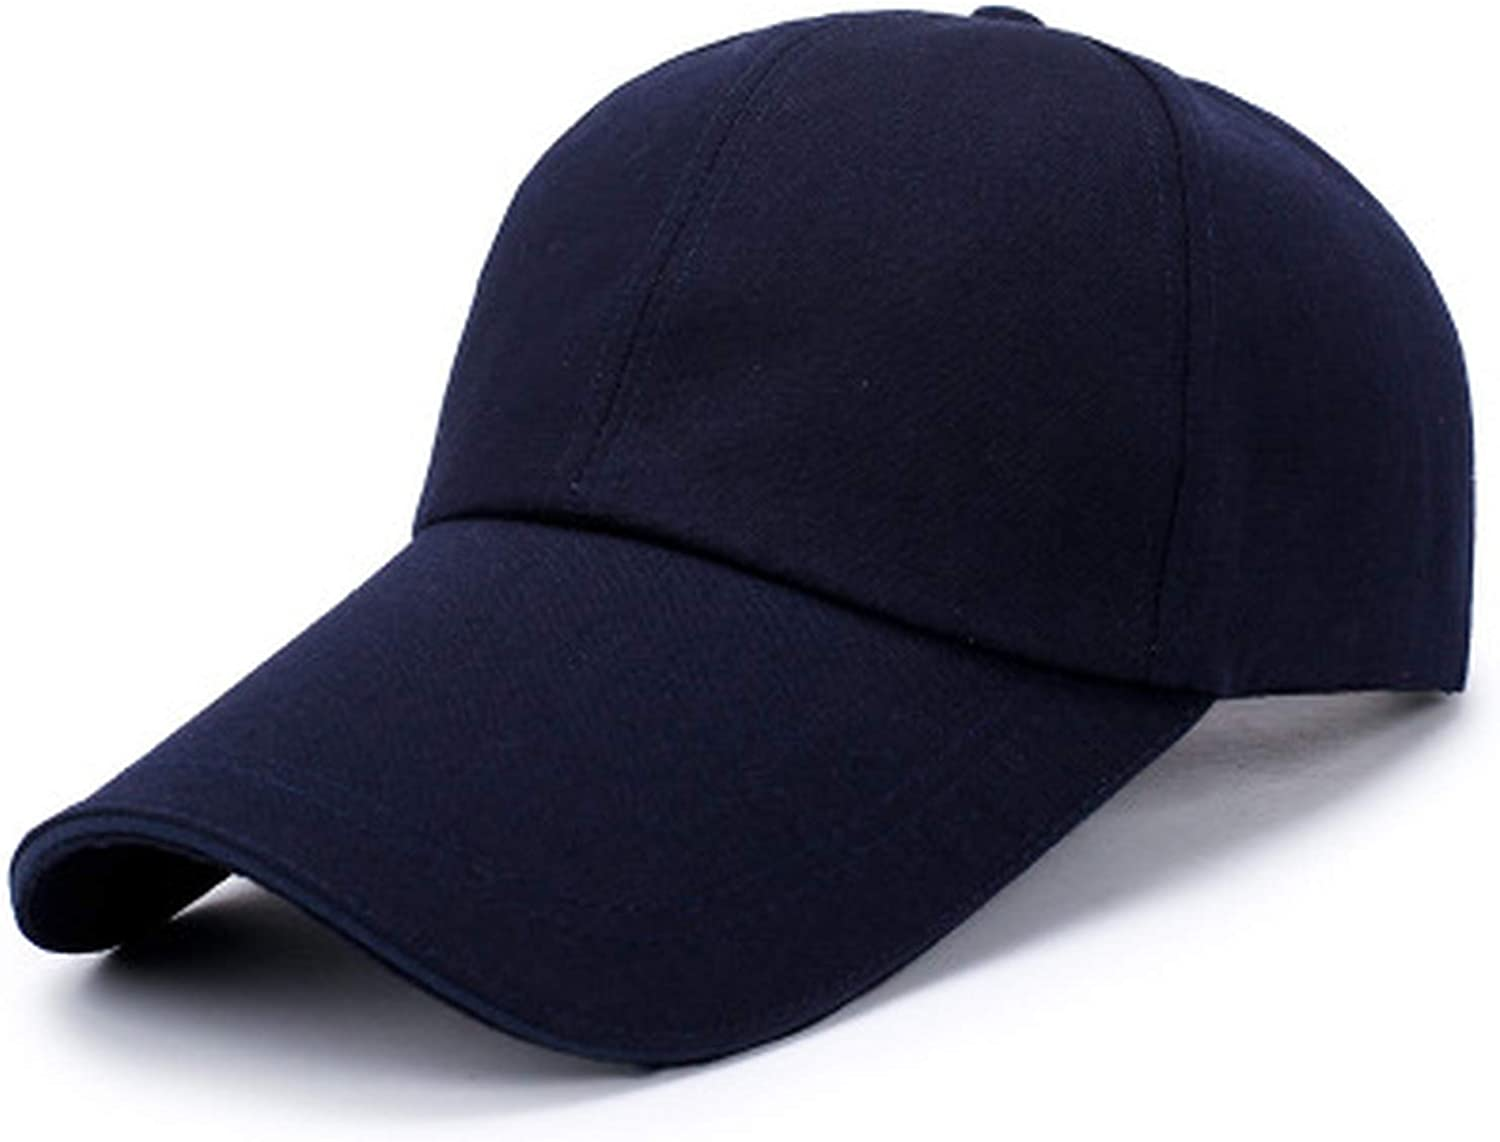 Ron Kite Cap Solid Color Baseball Cap Caps Hats Fitted Casual Hip Hop Dad Hats for Men Women Unisex